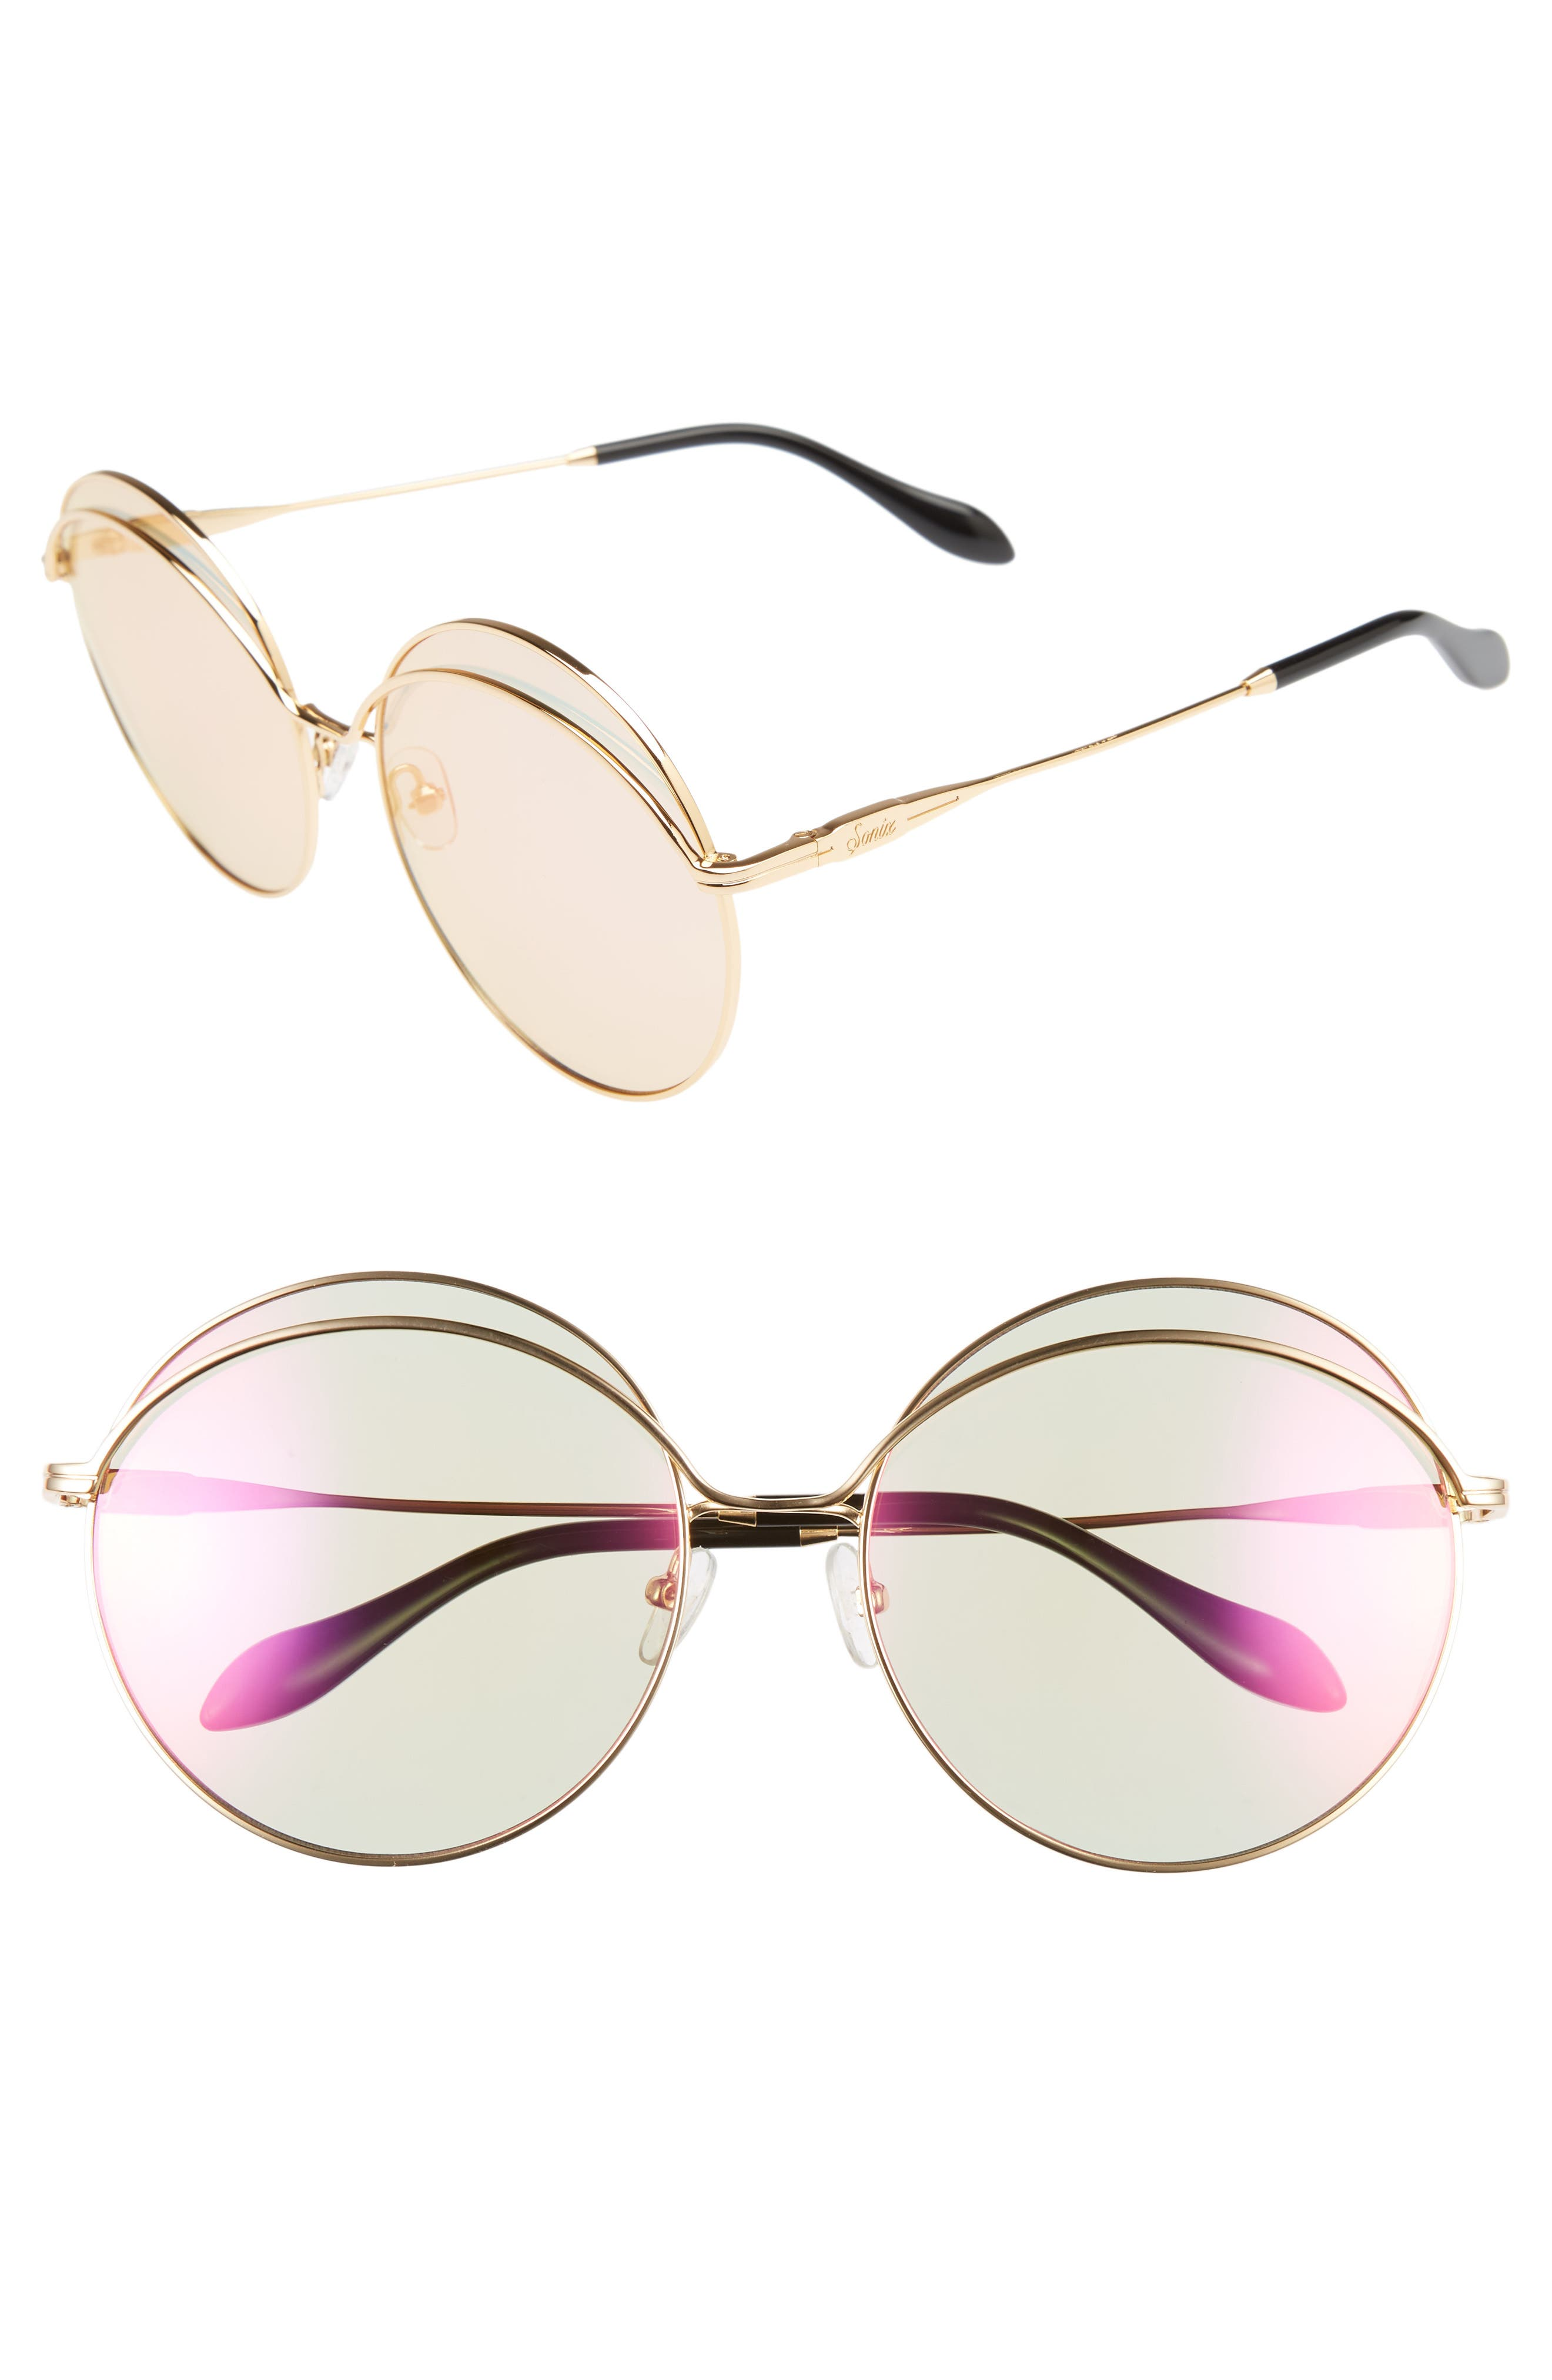 Oasis 63mm Round Sunglasses,                             Main thumbnail 3, color,